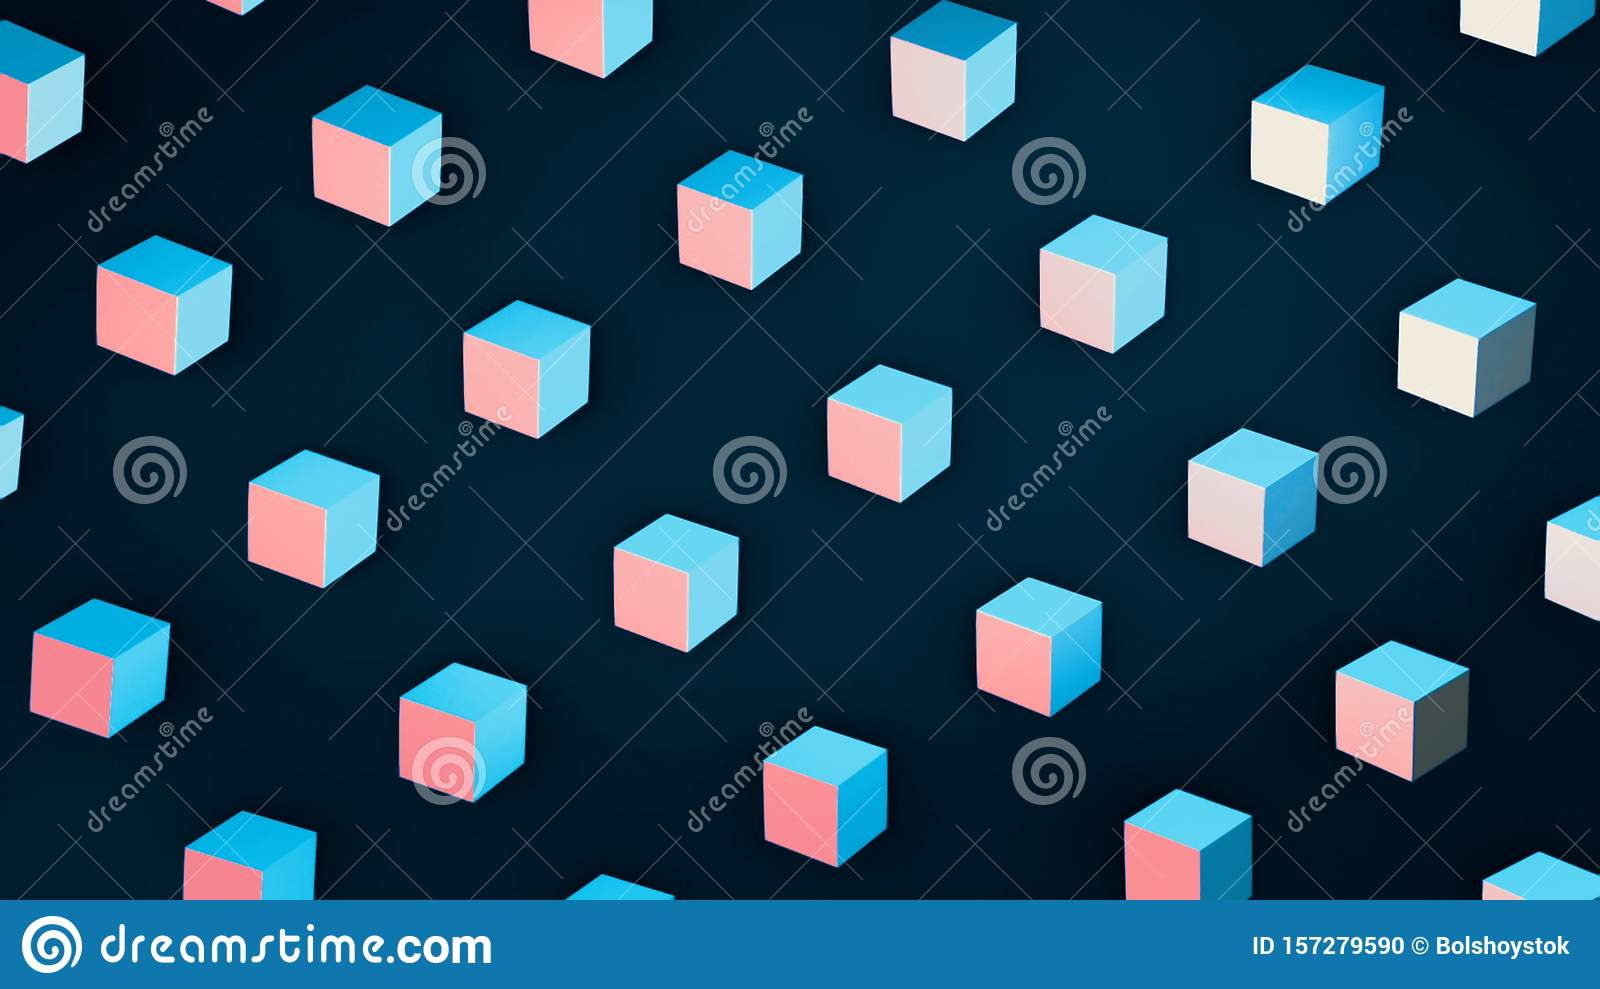 Animation Of 3d Rendering Of White Geometric Shapes Colorful Cartoon Background With Large Number Of Small 3d Cubes Stock Illustration Illustration Of Geometric Branding 157279590